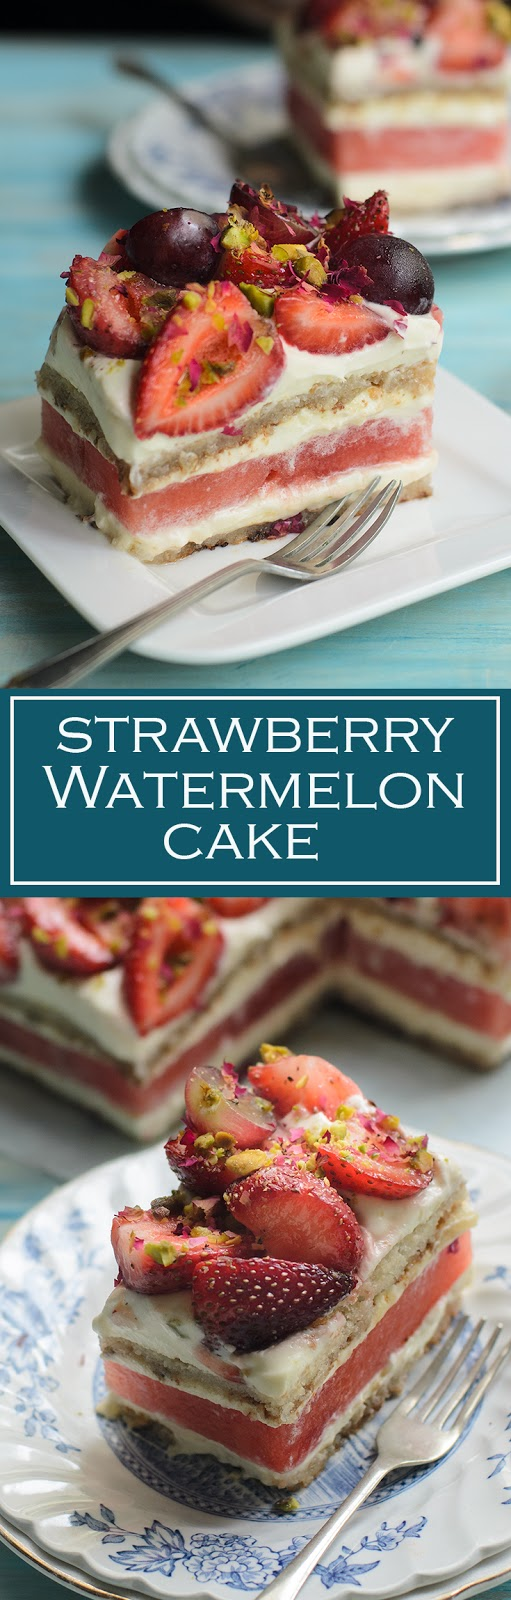 copycat Watermelon and Strawberry Cake image